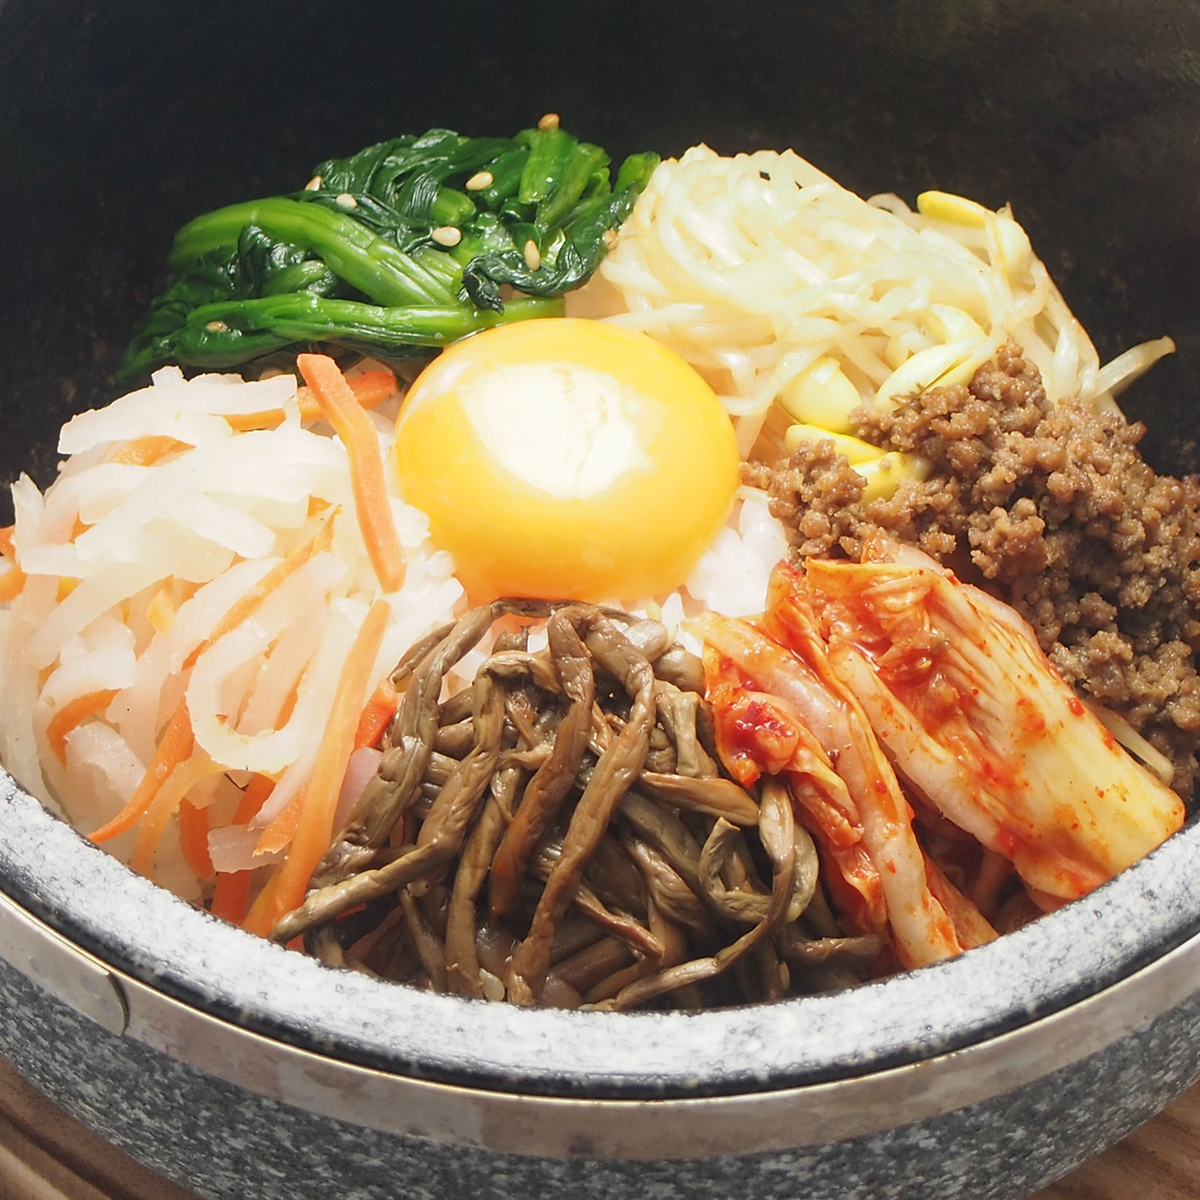 The end is a stone - cooked bibimbap!